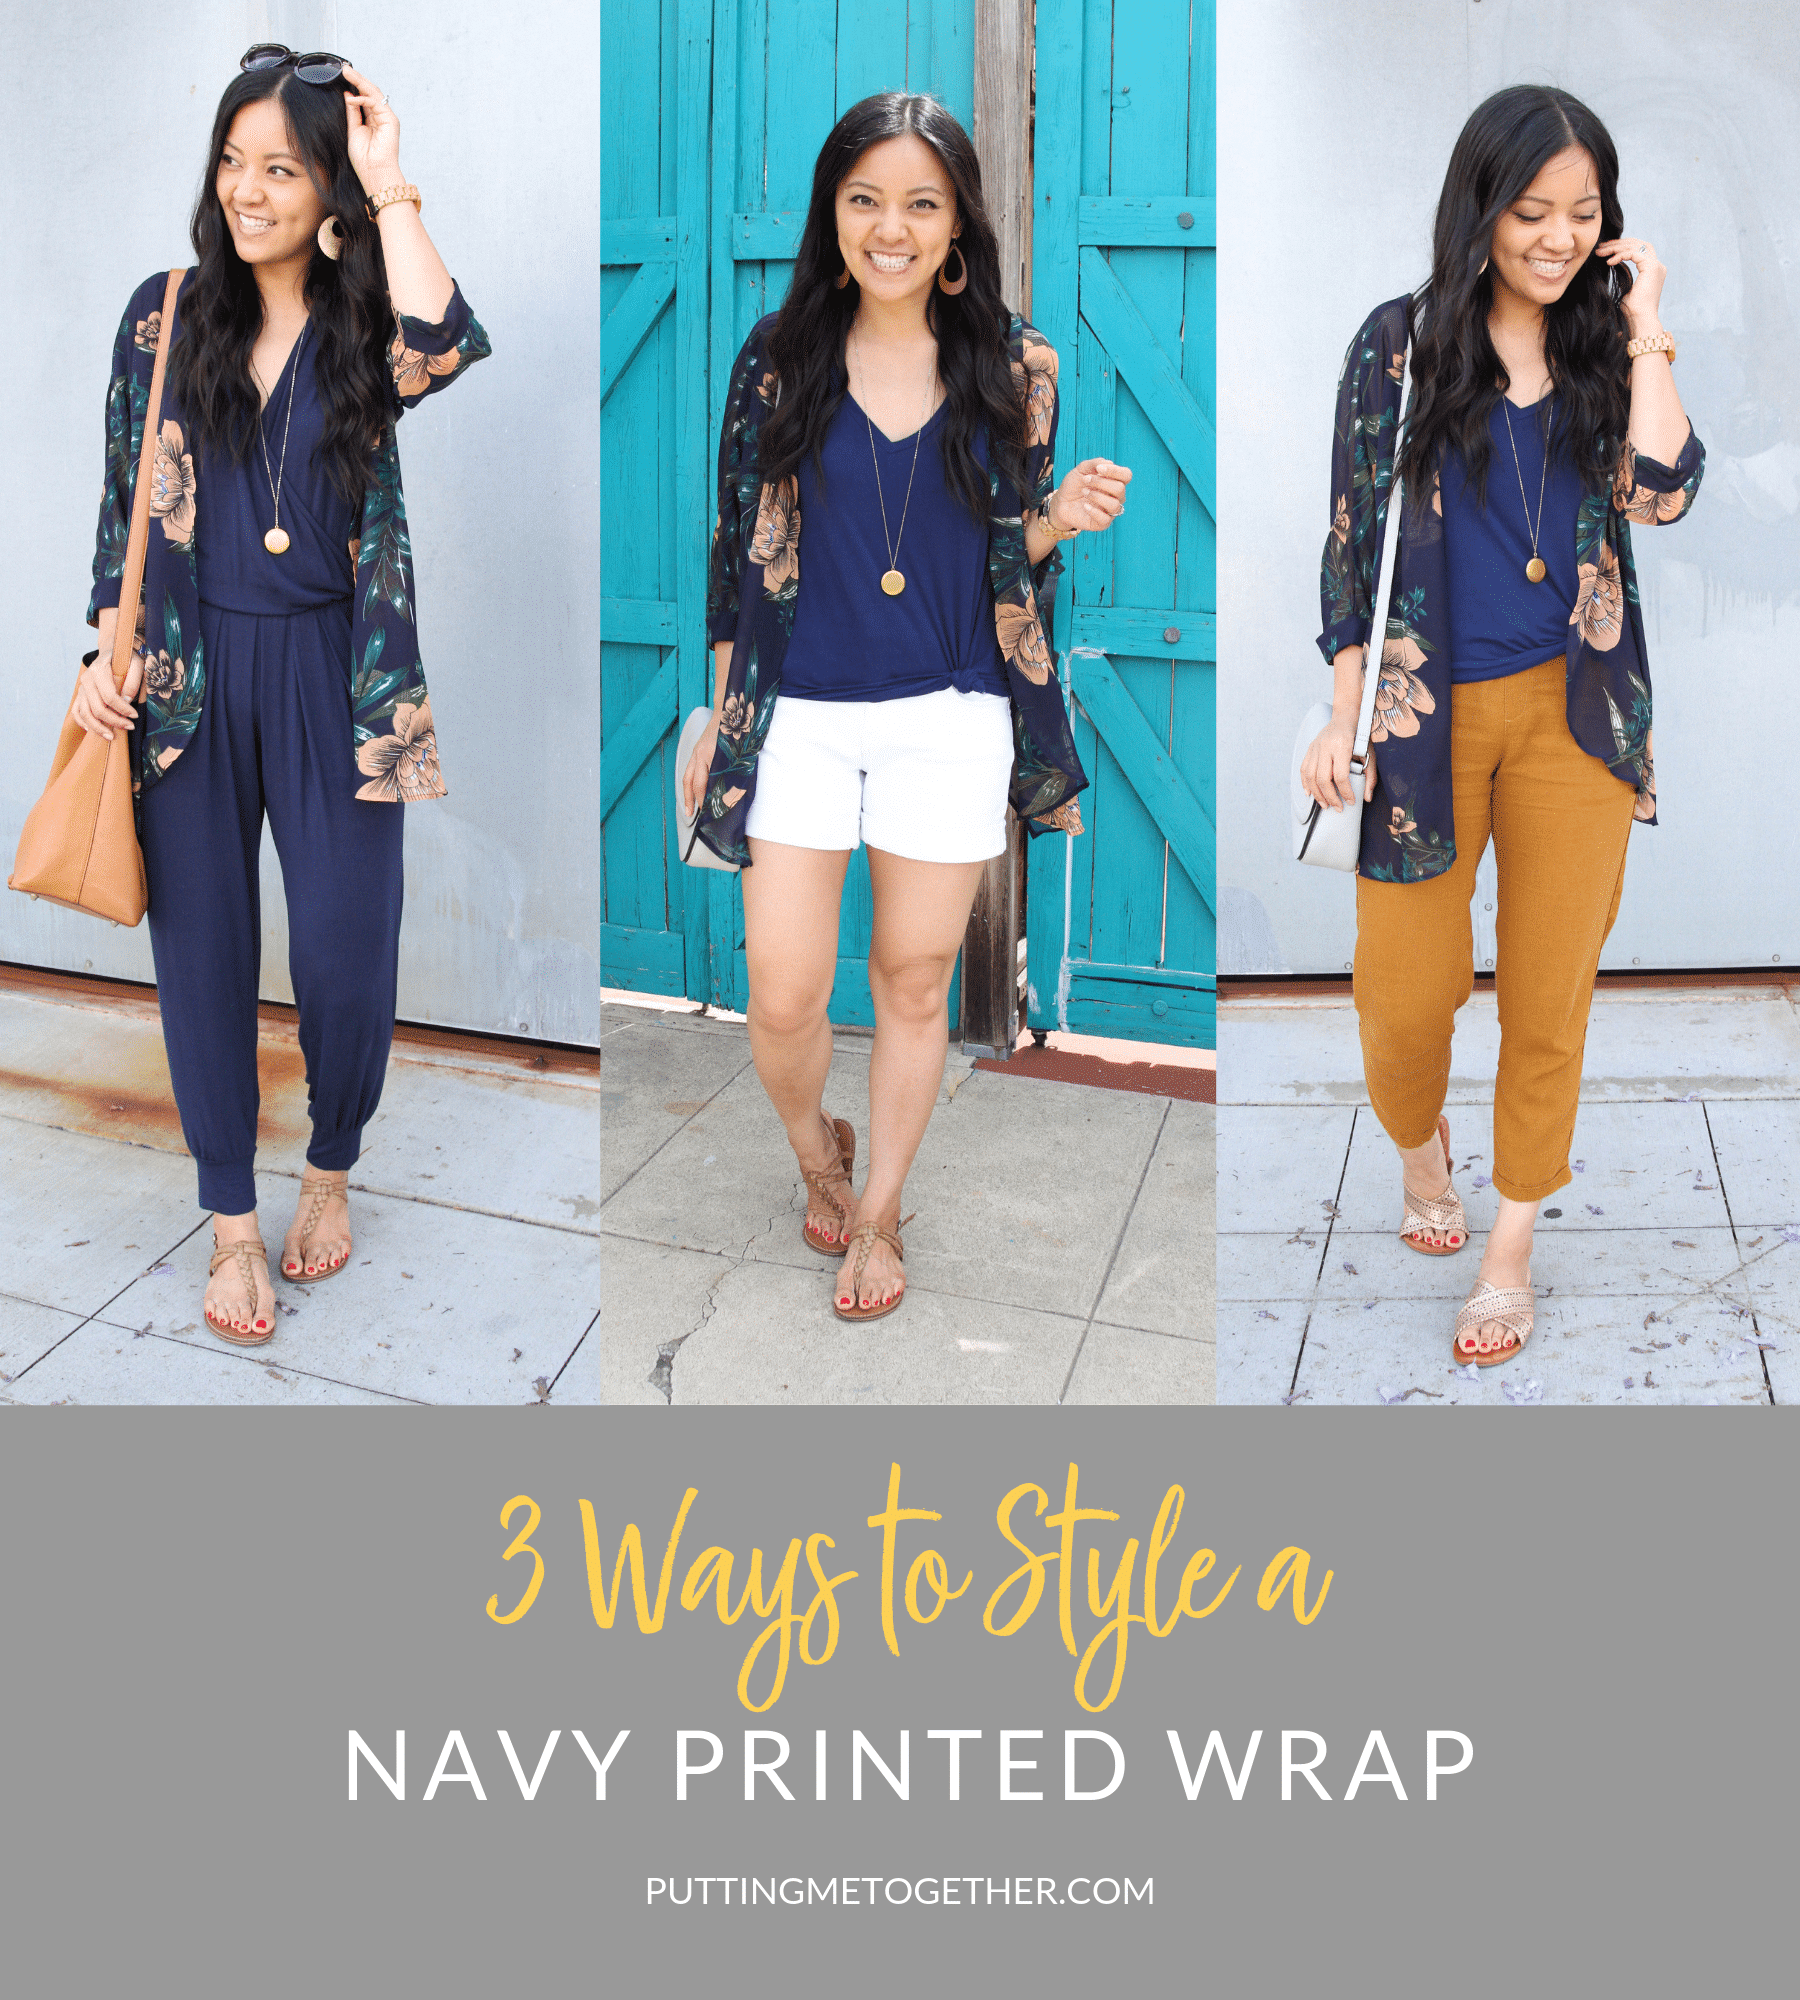 3 Ways to style a navy printed wrap